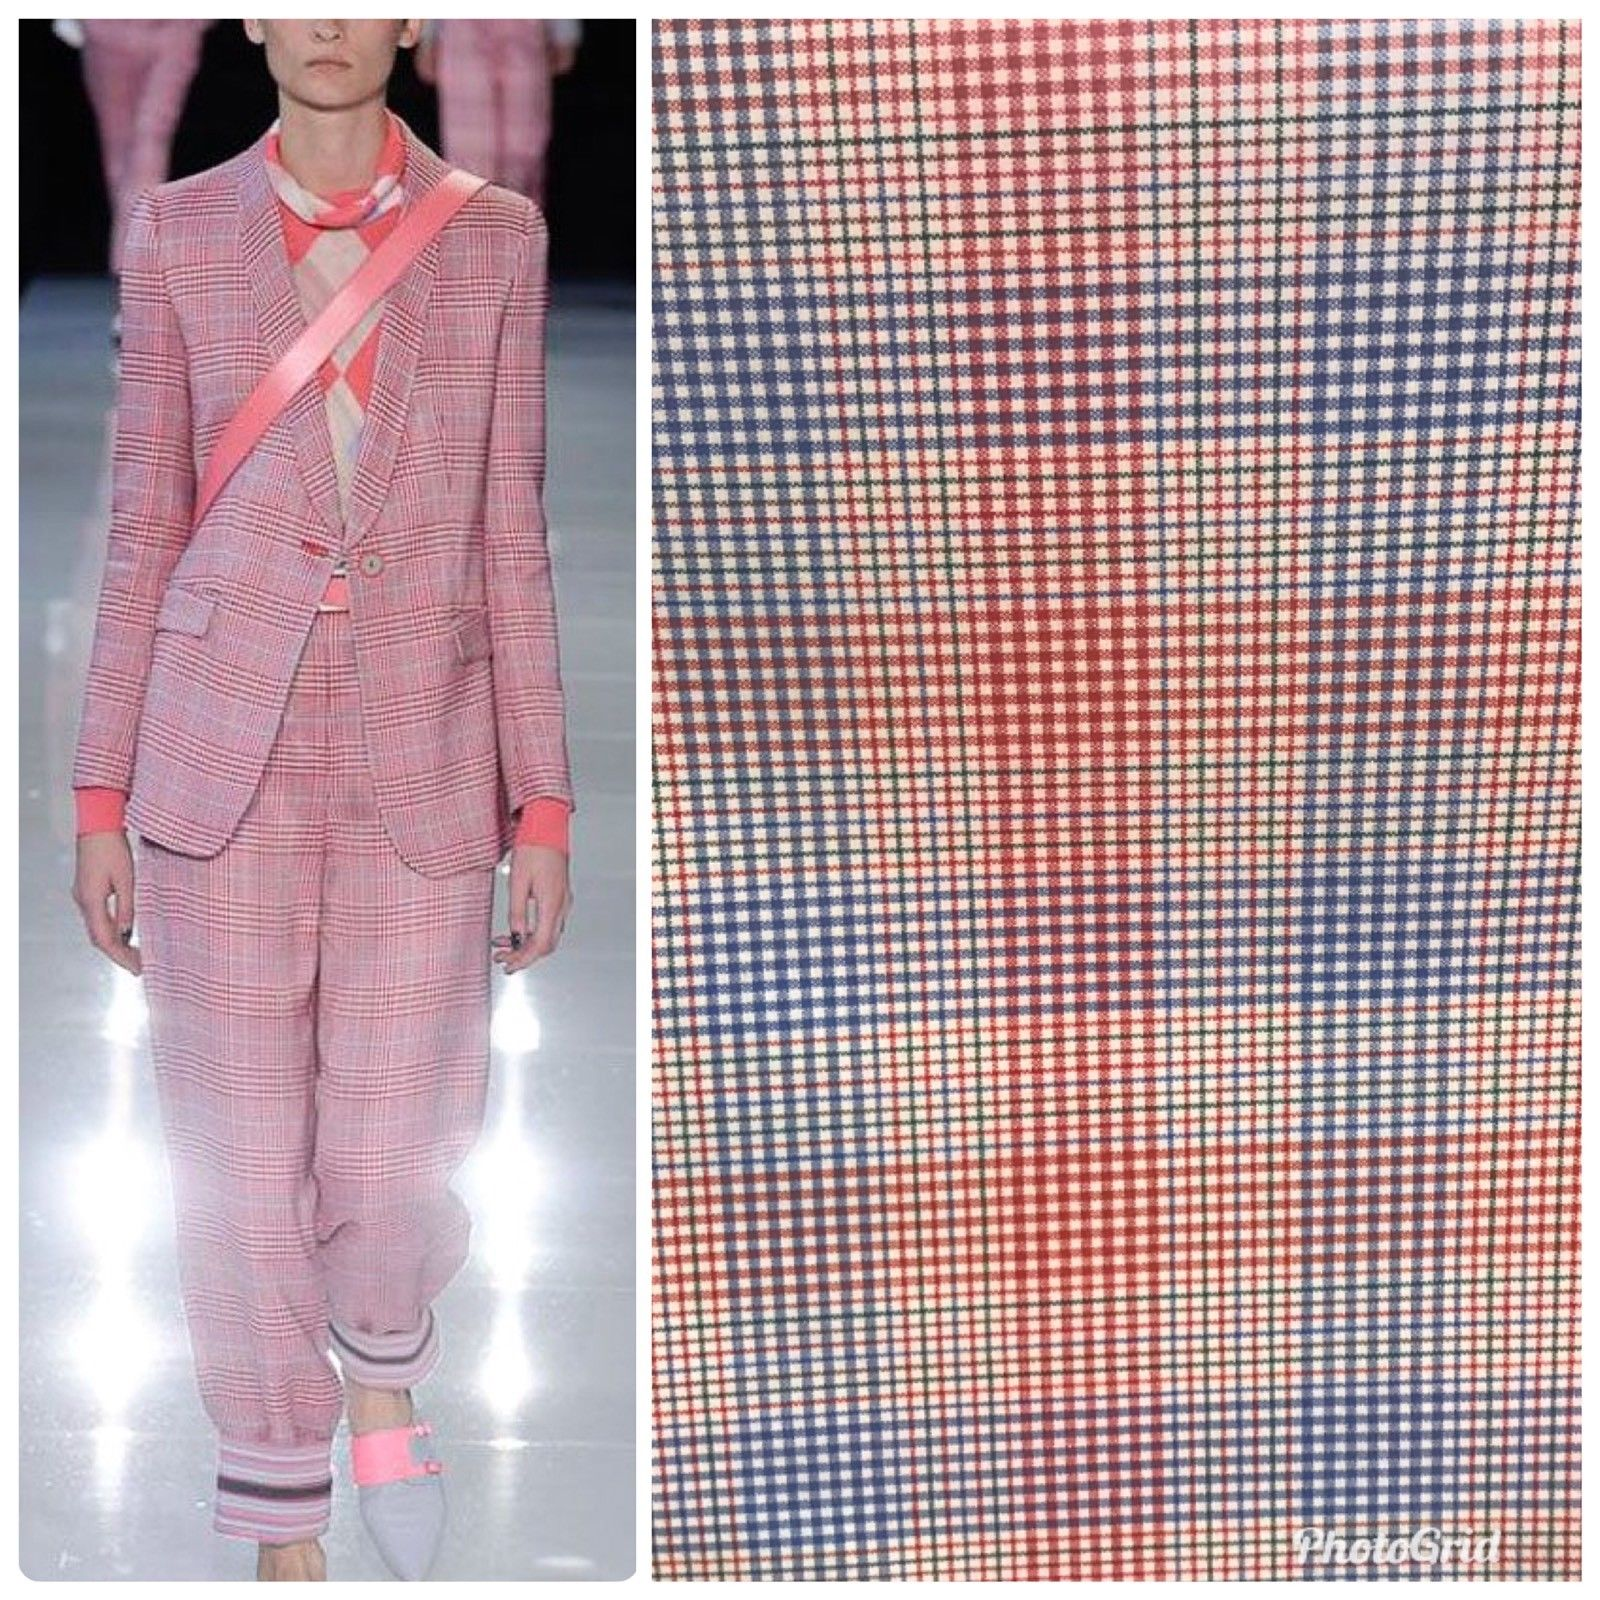 NEW Designer Wool Dacron Lightweight Suiting Plaid Tartan Fabric - Fancy Styles Fabric Boutique